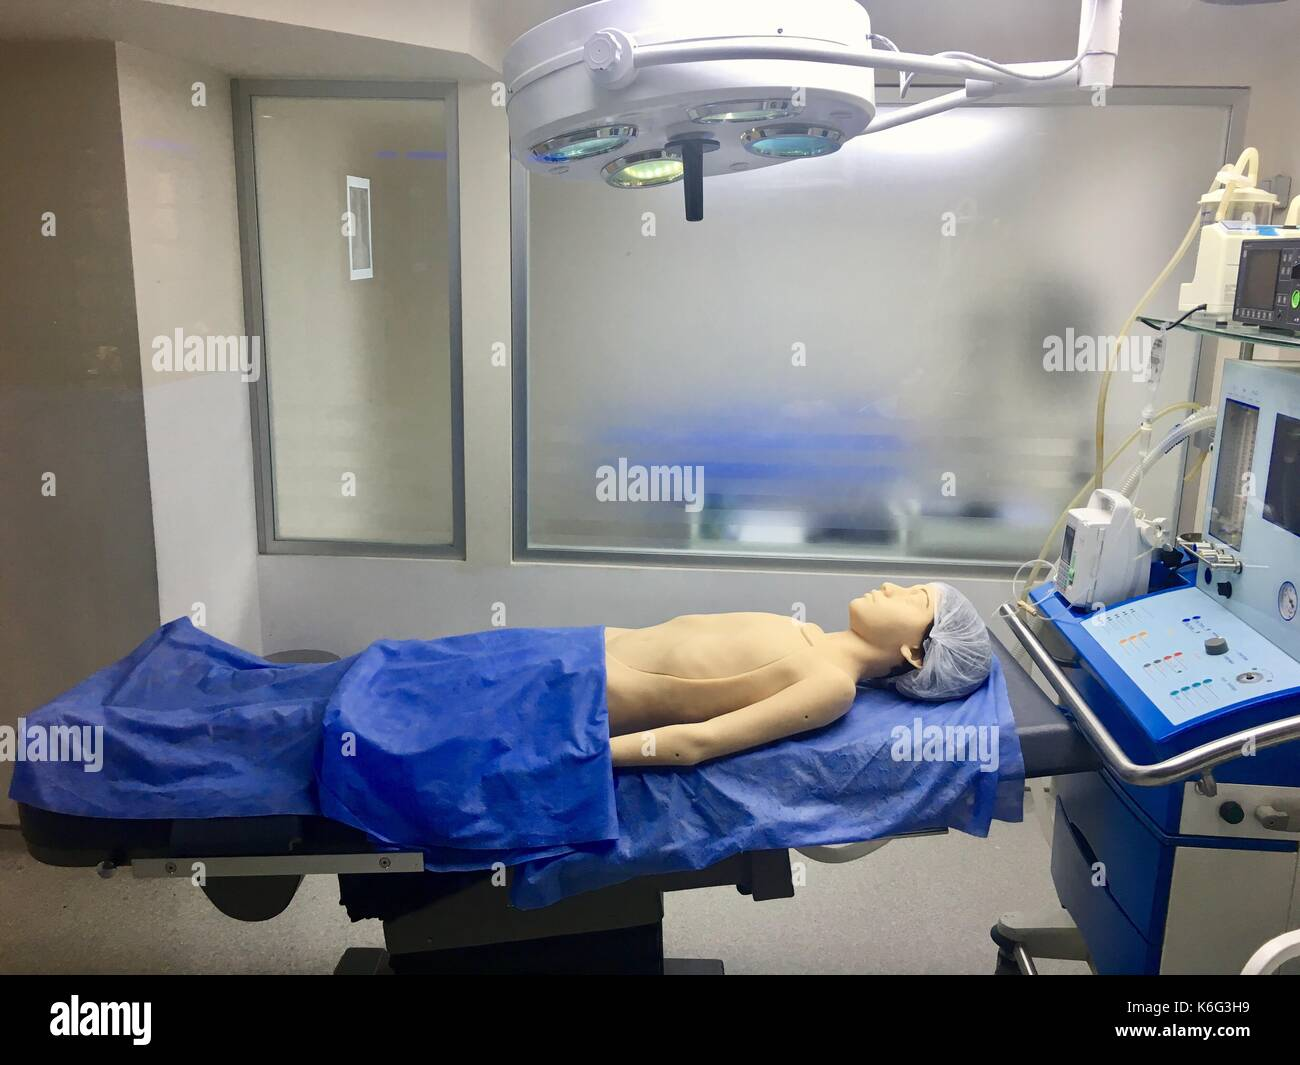 artificial wax model in modern operating room with Defibrillator equipment for training, educational - Stock Image